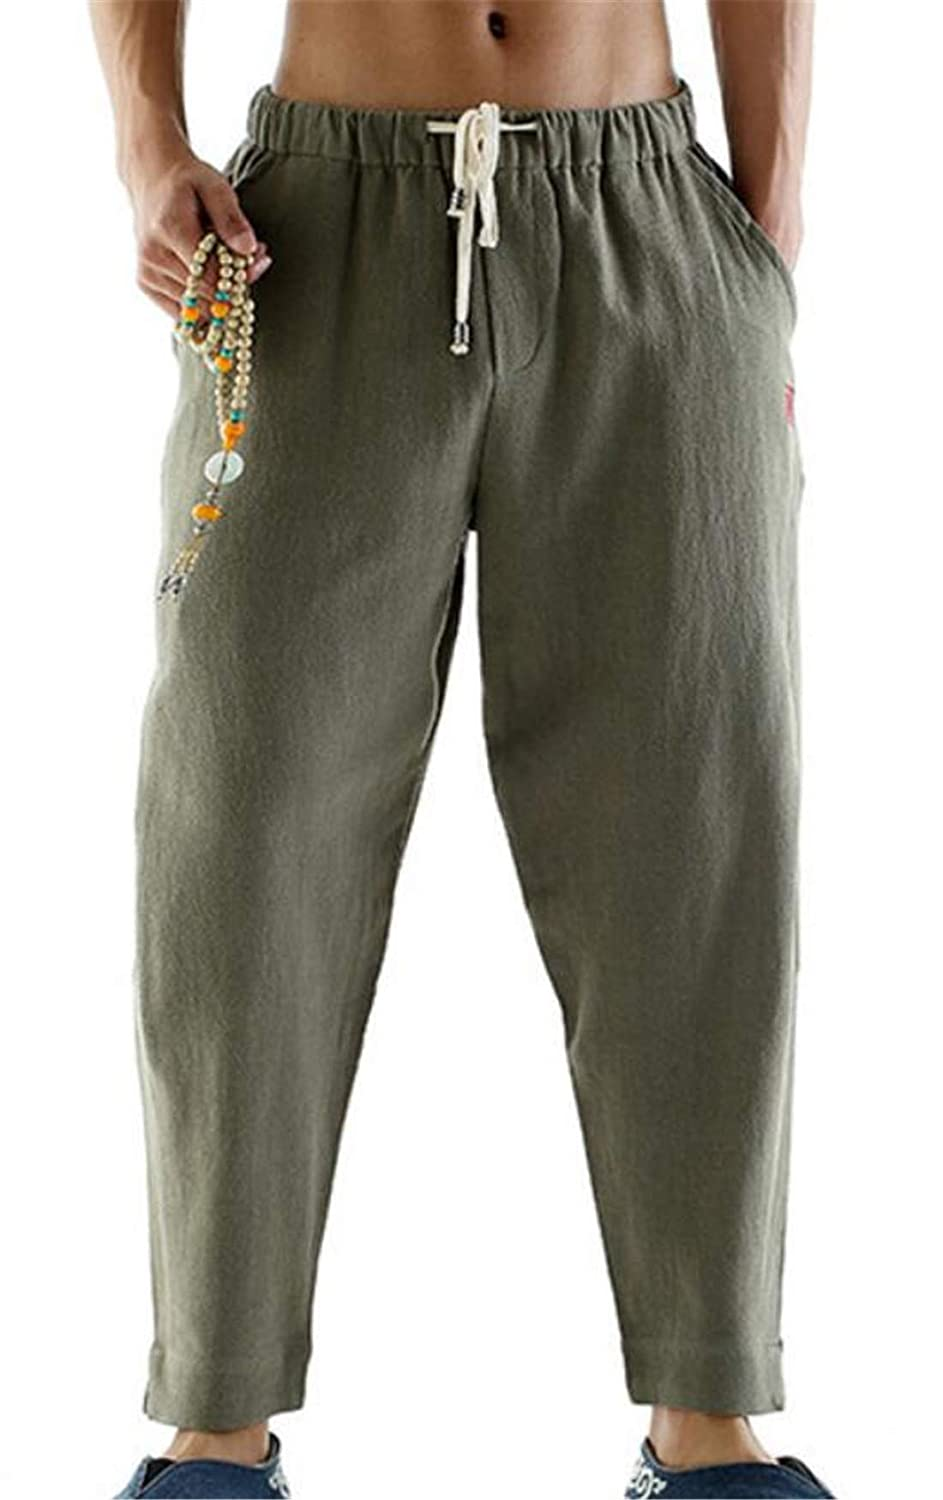 Pivaconis Mens Plus Size Style Loose Fit Solid Color Chinese Linen Harem Pants